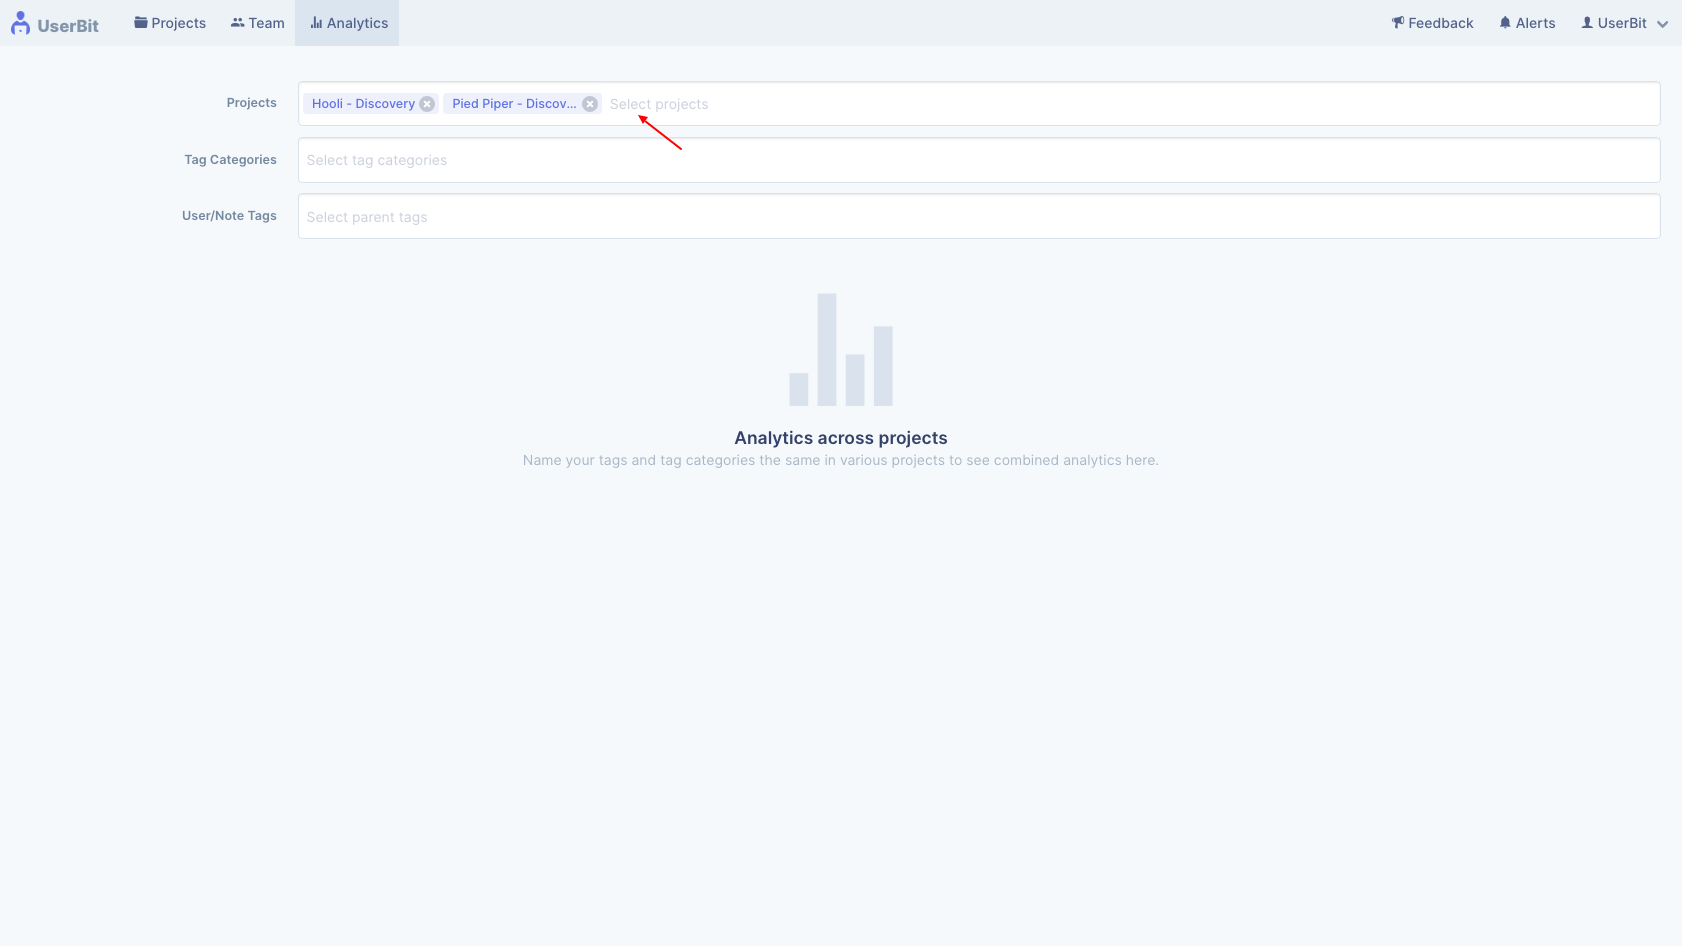 UserBit global analytics screenshot